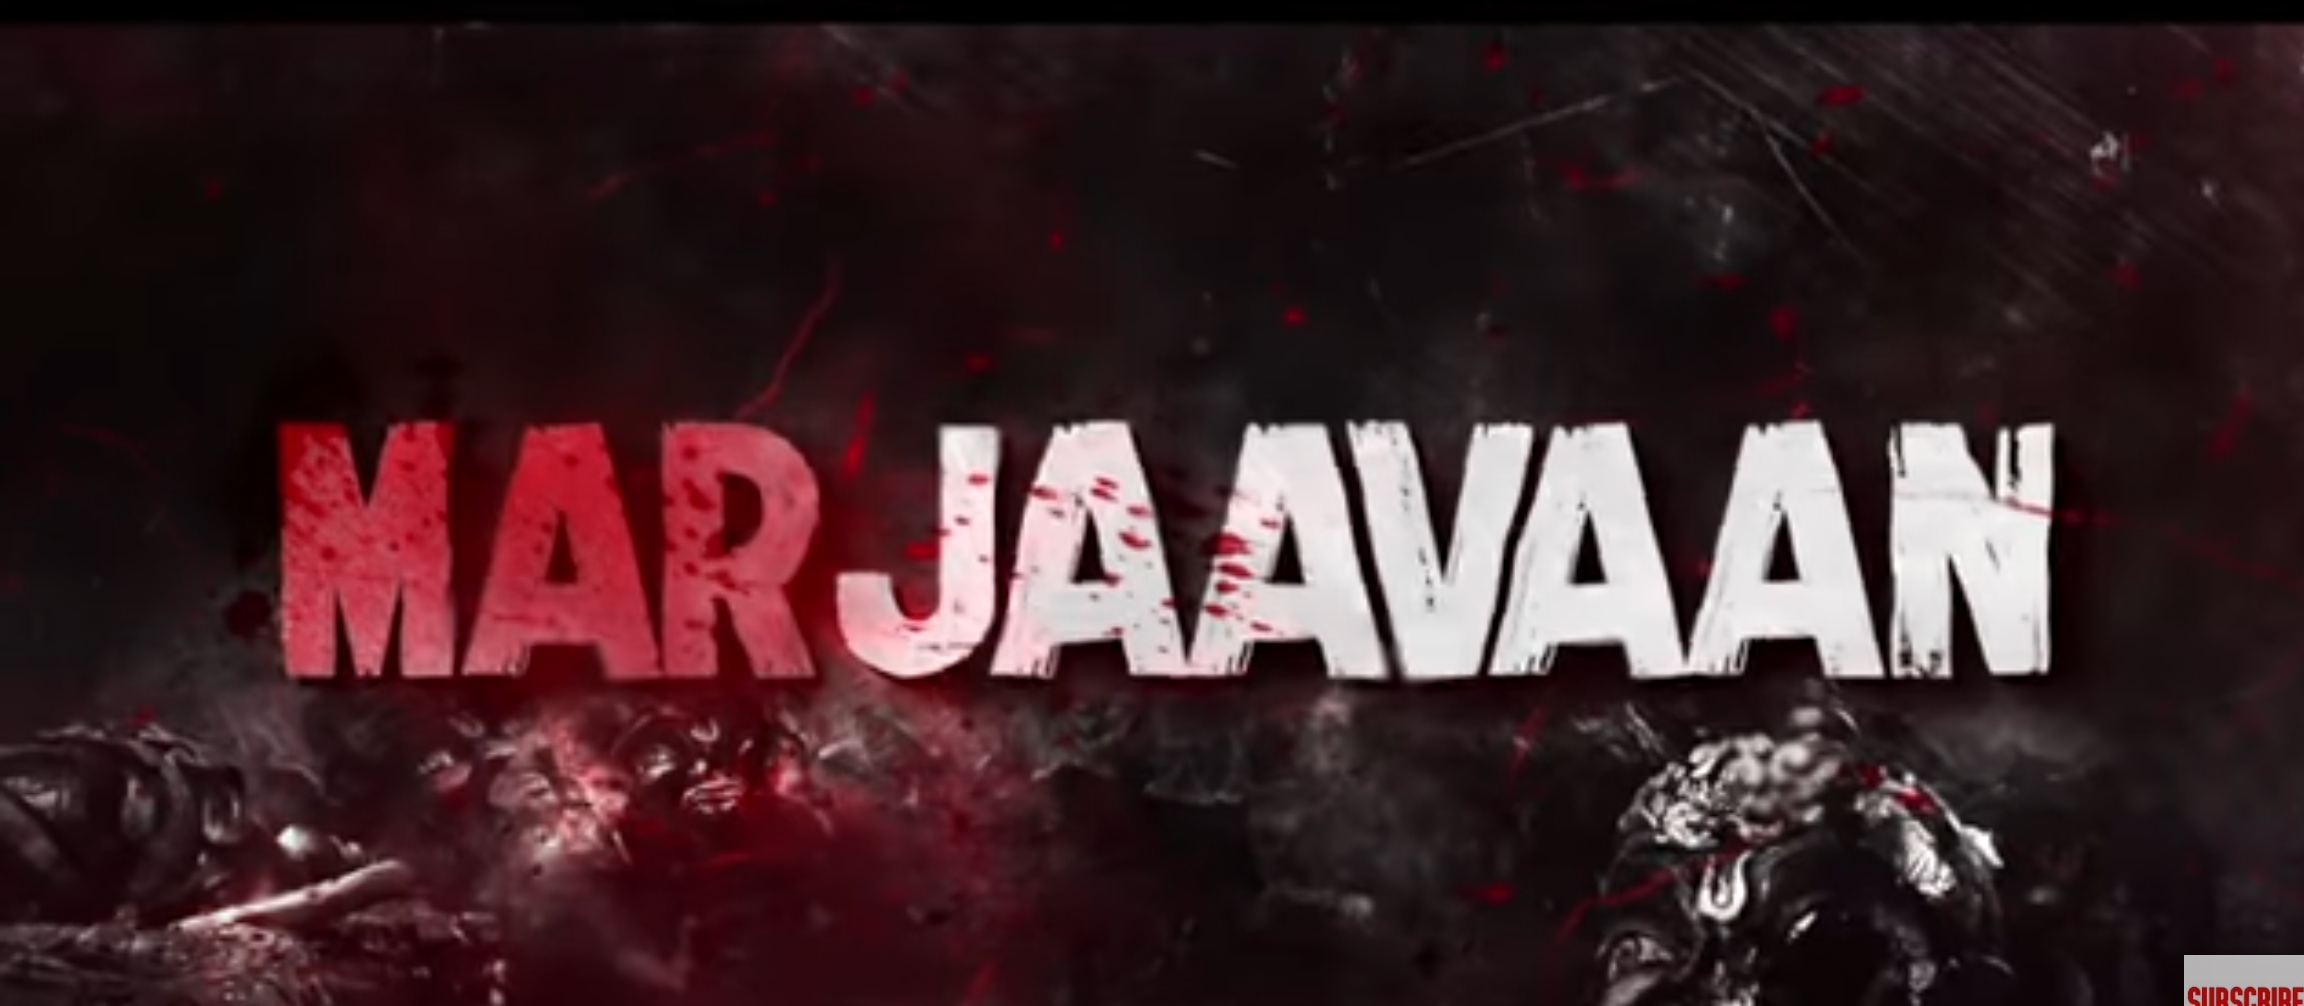 Marjaavaan Movie Review 20.05.20-Critic view Powerful movie